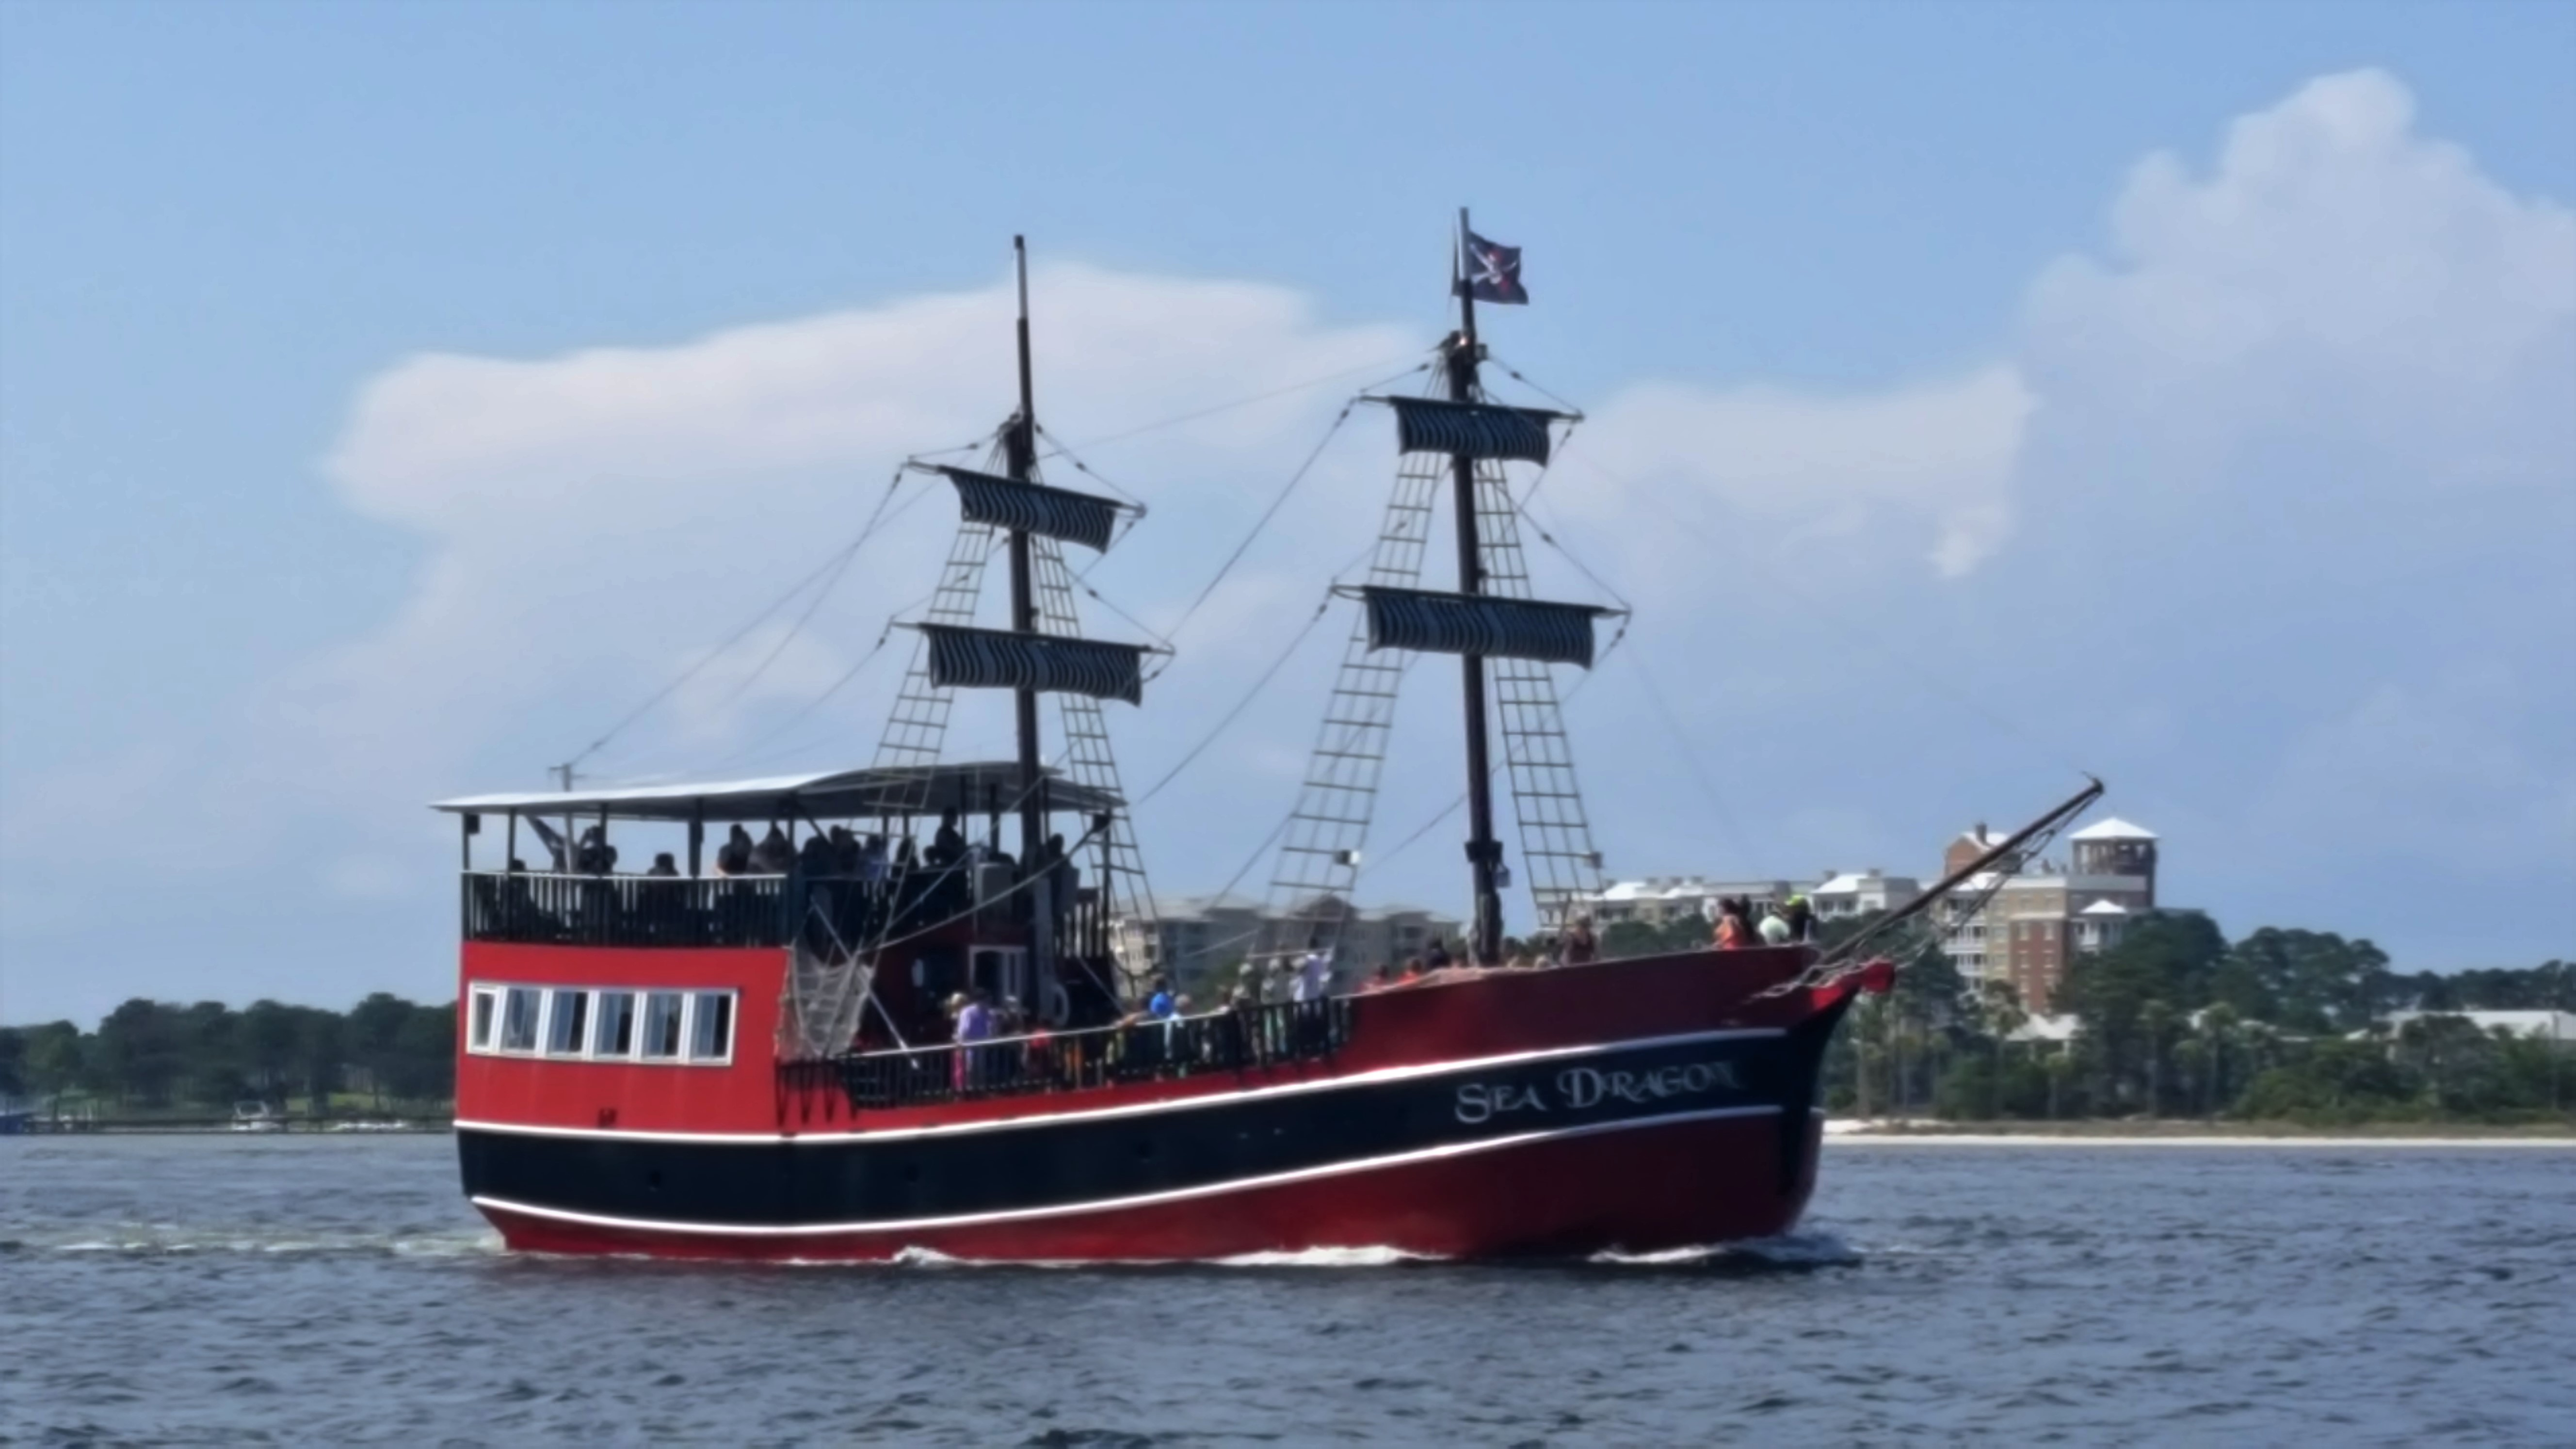 Take a ride on the PIrate Ship Cruise.  Be ready to get wet when the little pirates